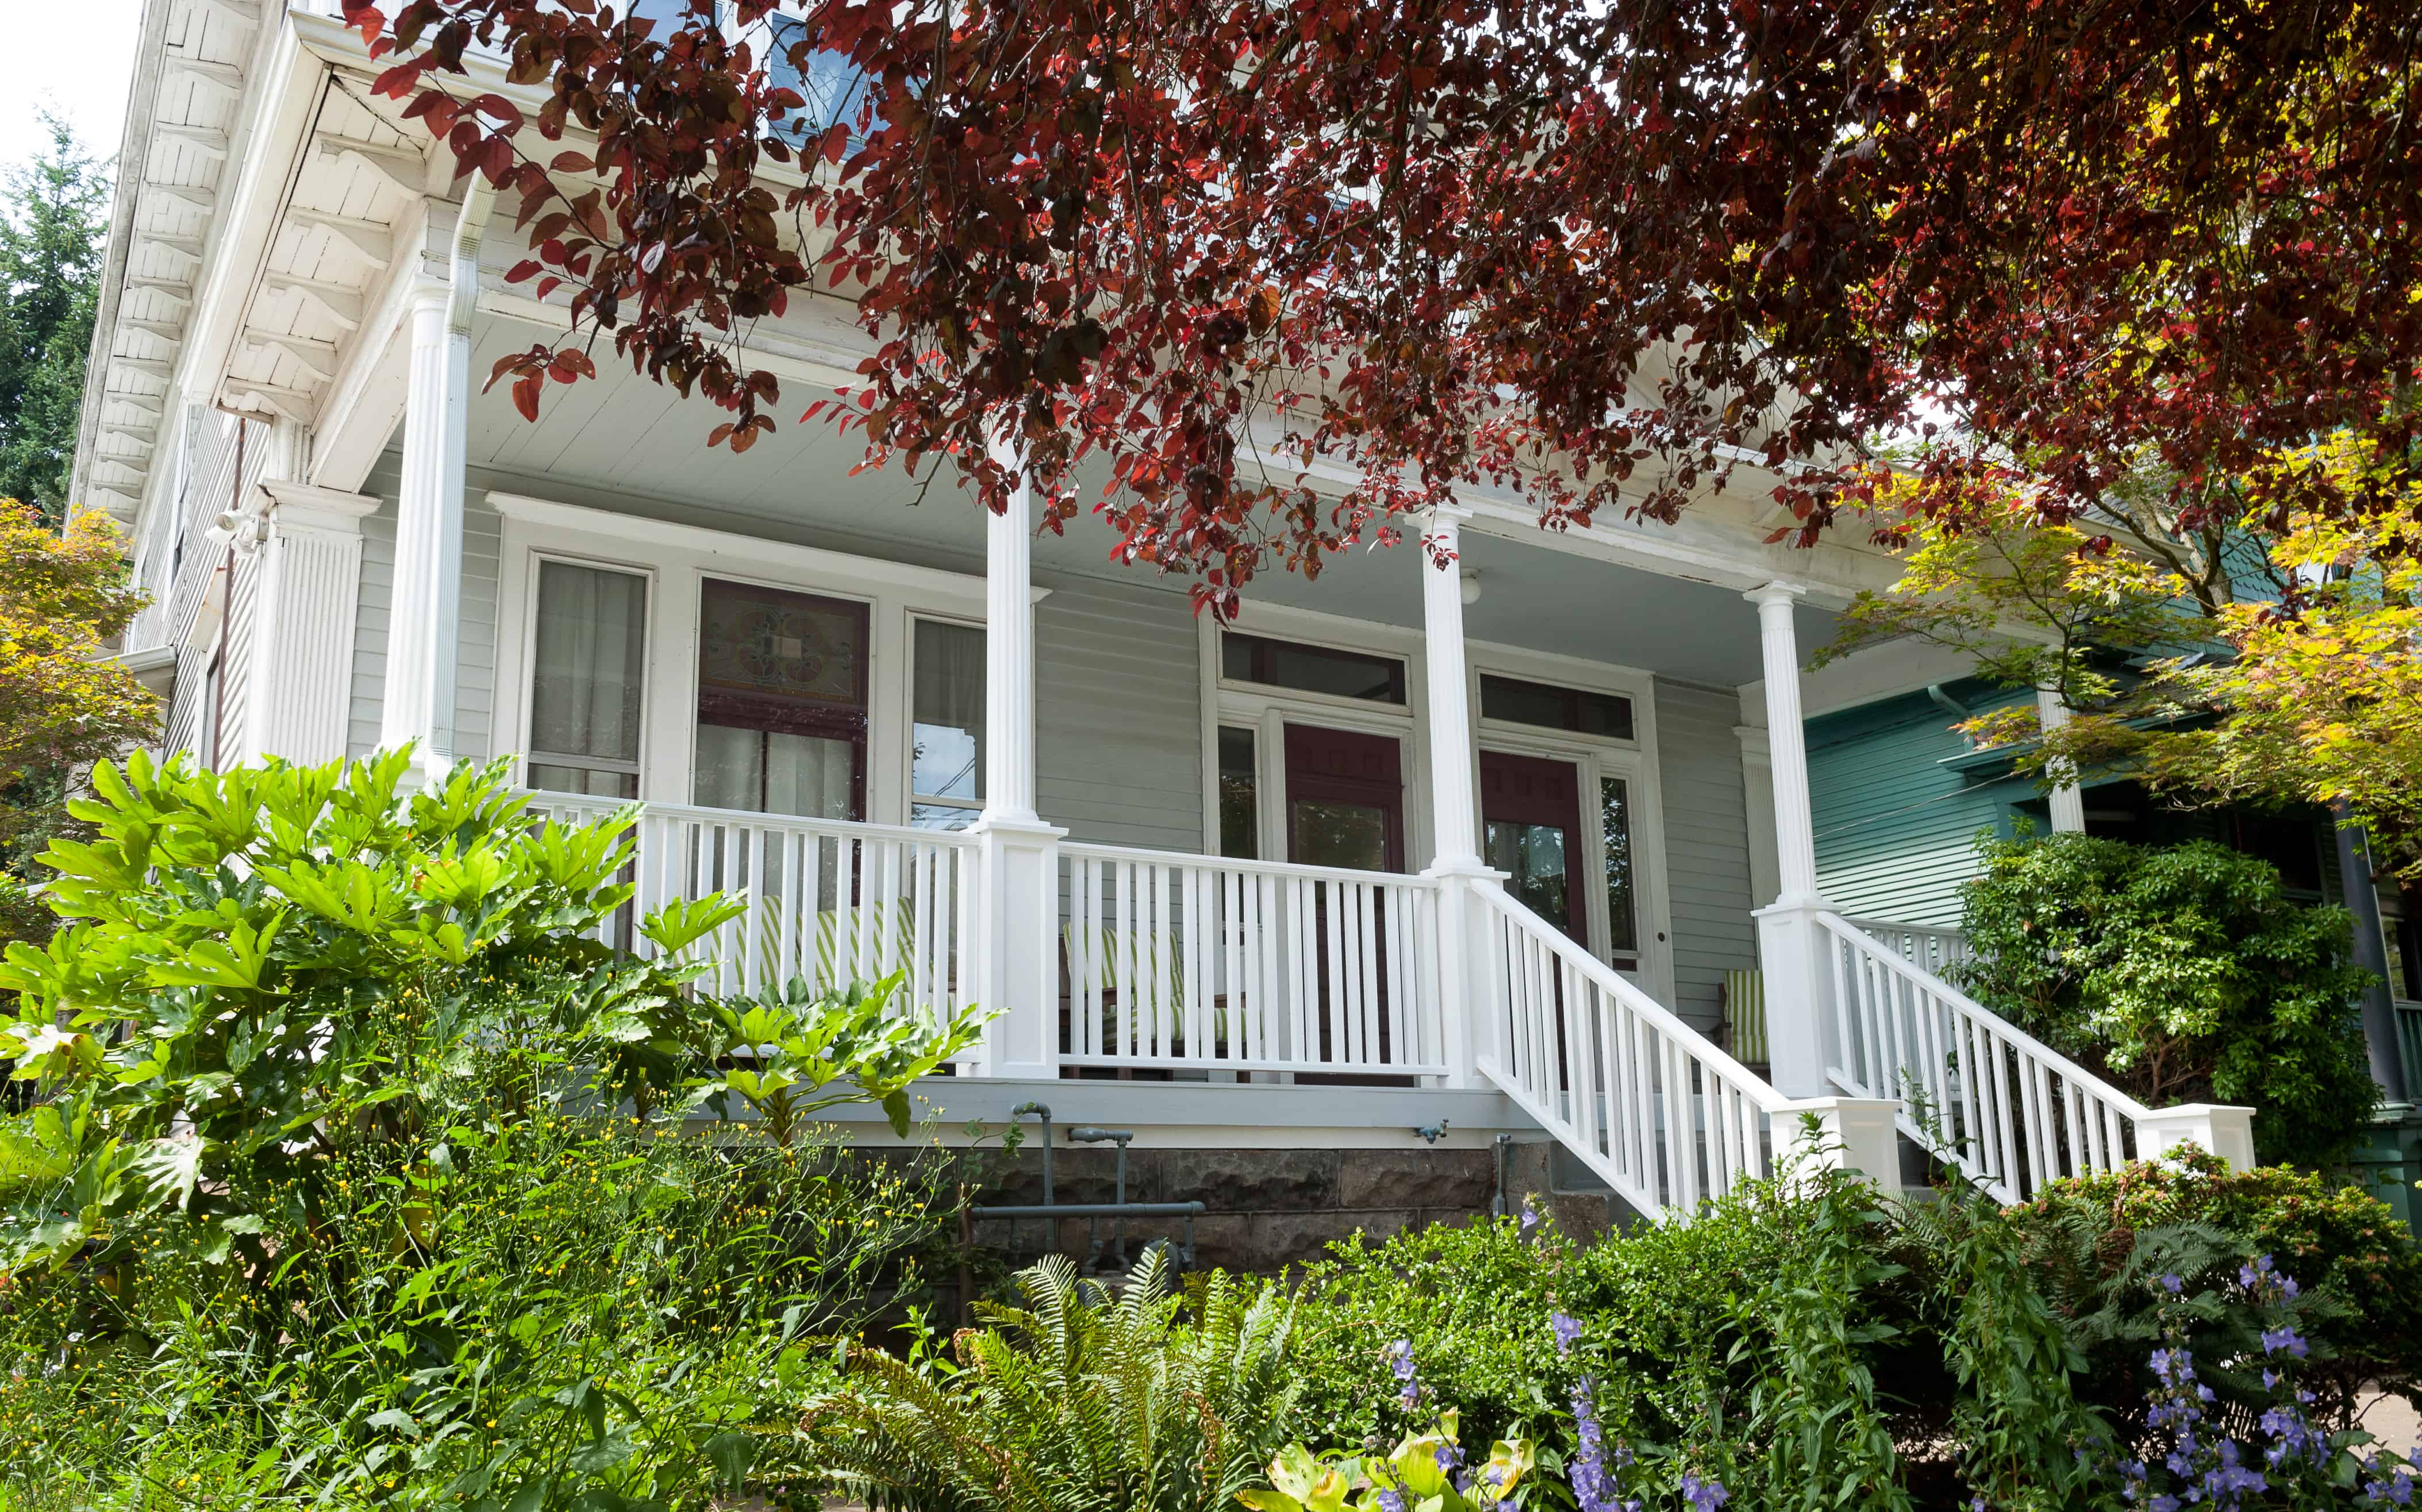 Neil Kelly remodeled this classic American Foursquare